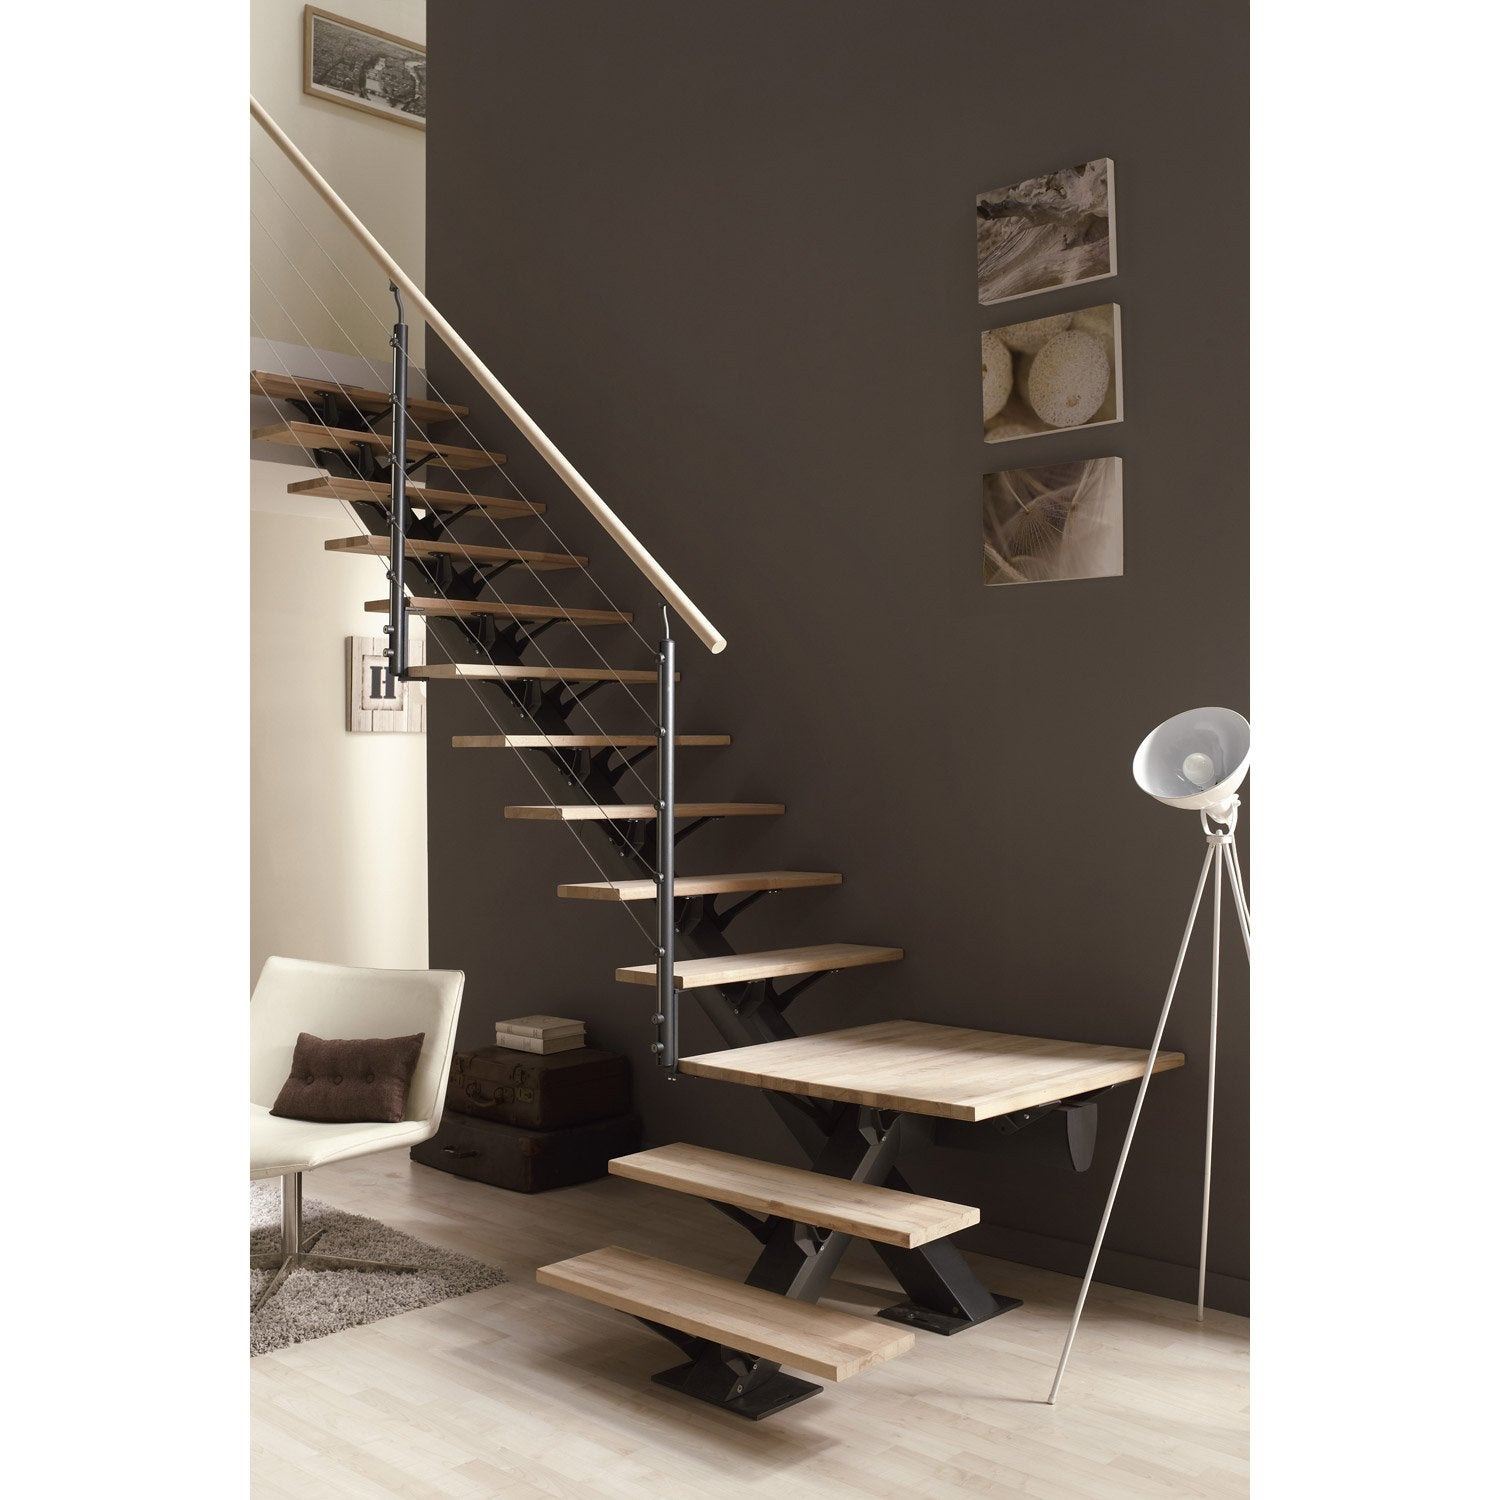 escalier quart tournant mona structure aluminium marche bois leroy merlin. Black Bedroom Furniture Sets. Home Design Ideas